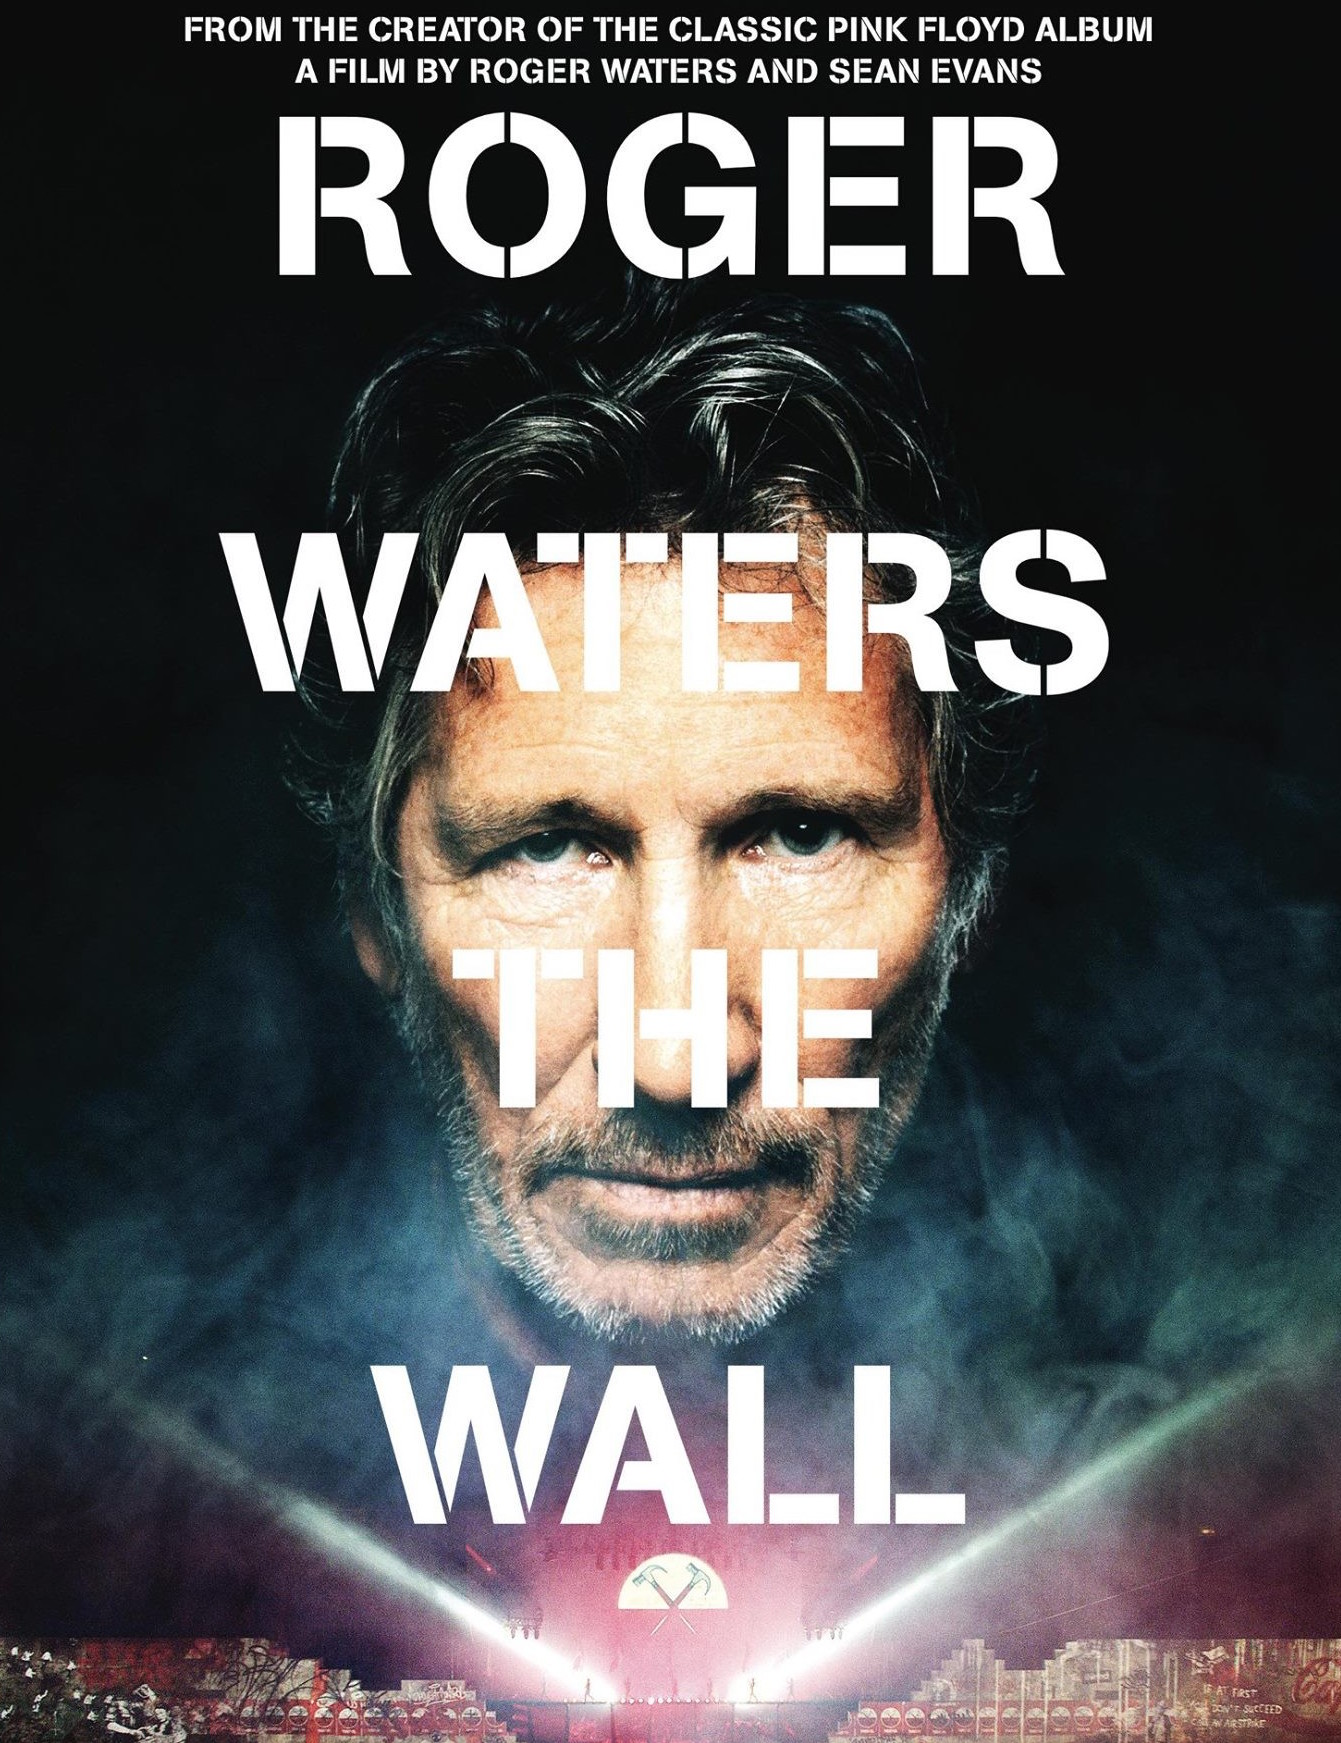 Roger Waters The Wall\' on DVD 12/1 | Best Classic Bands